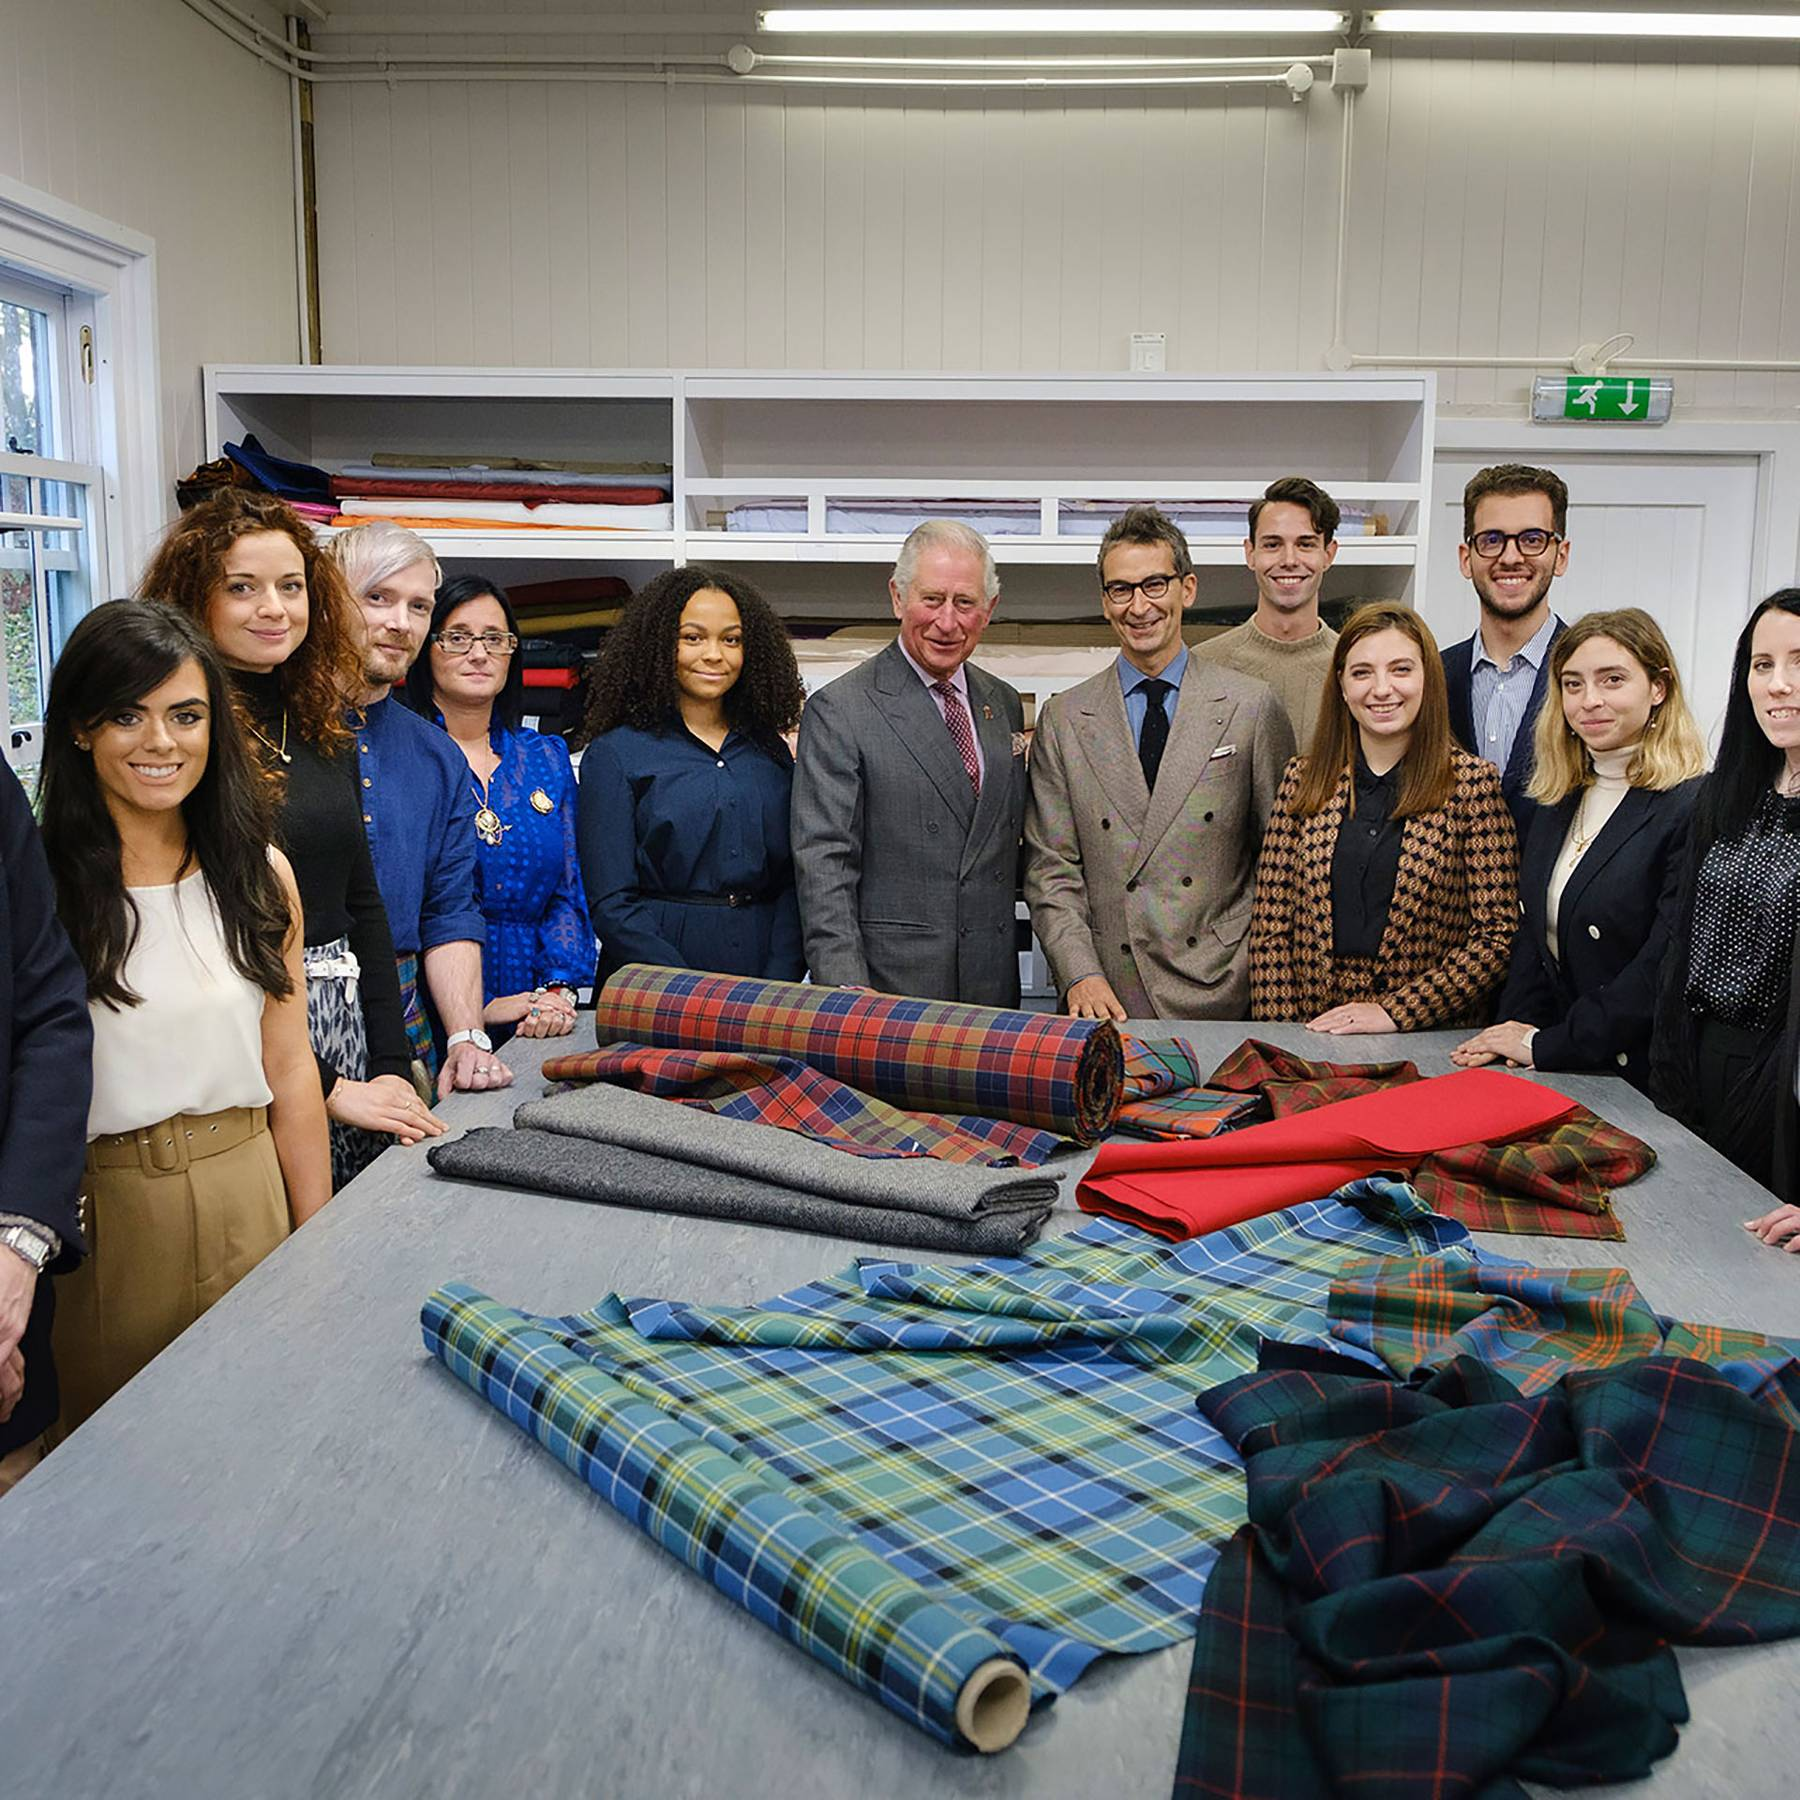 Prince Charles launches first fashion collection The Modern Artisan